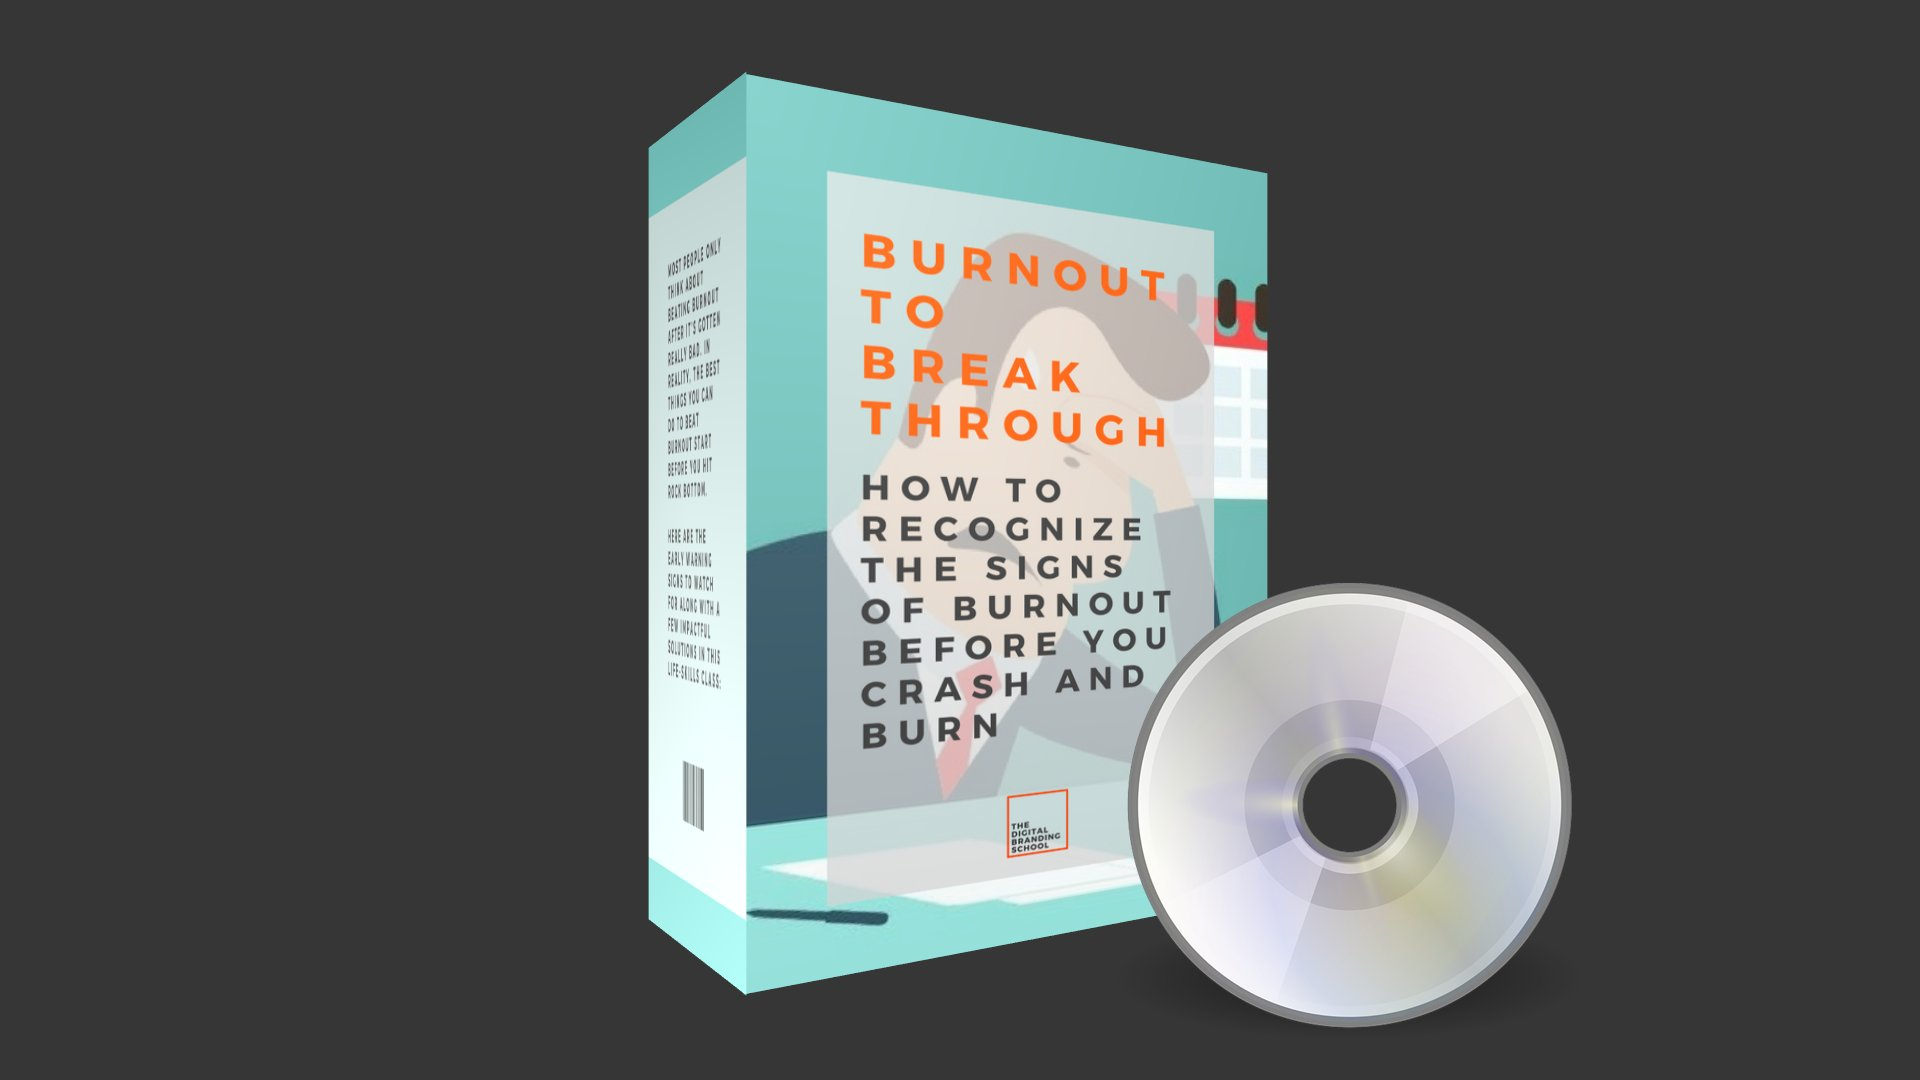 Burnout to Breakthrough - How to Recognize the Signs of